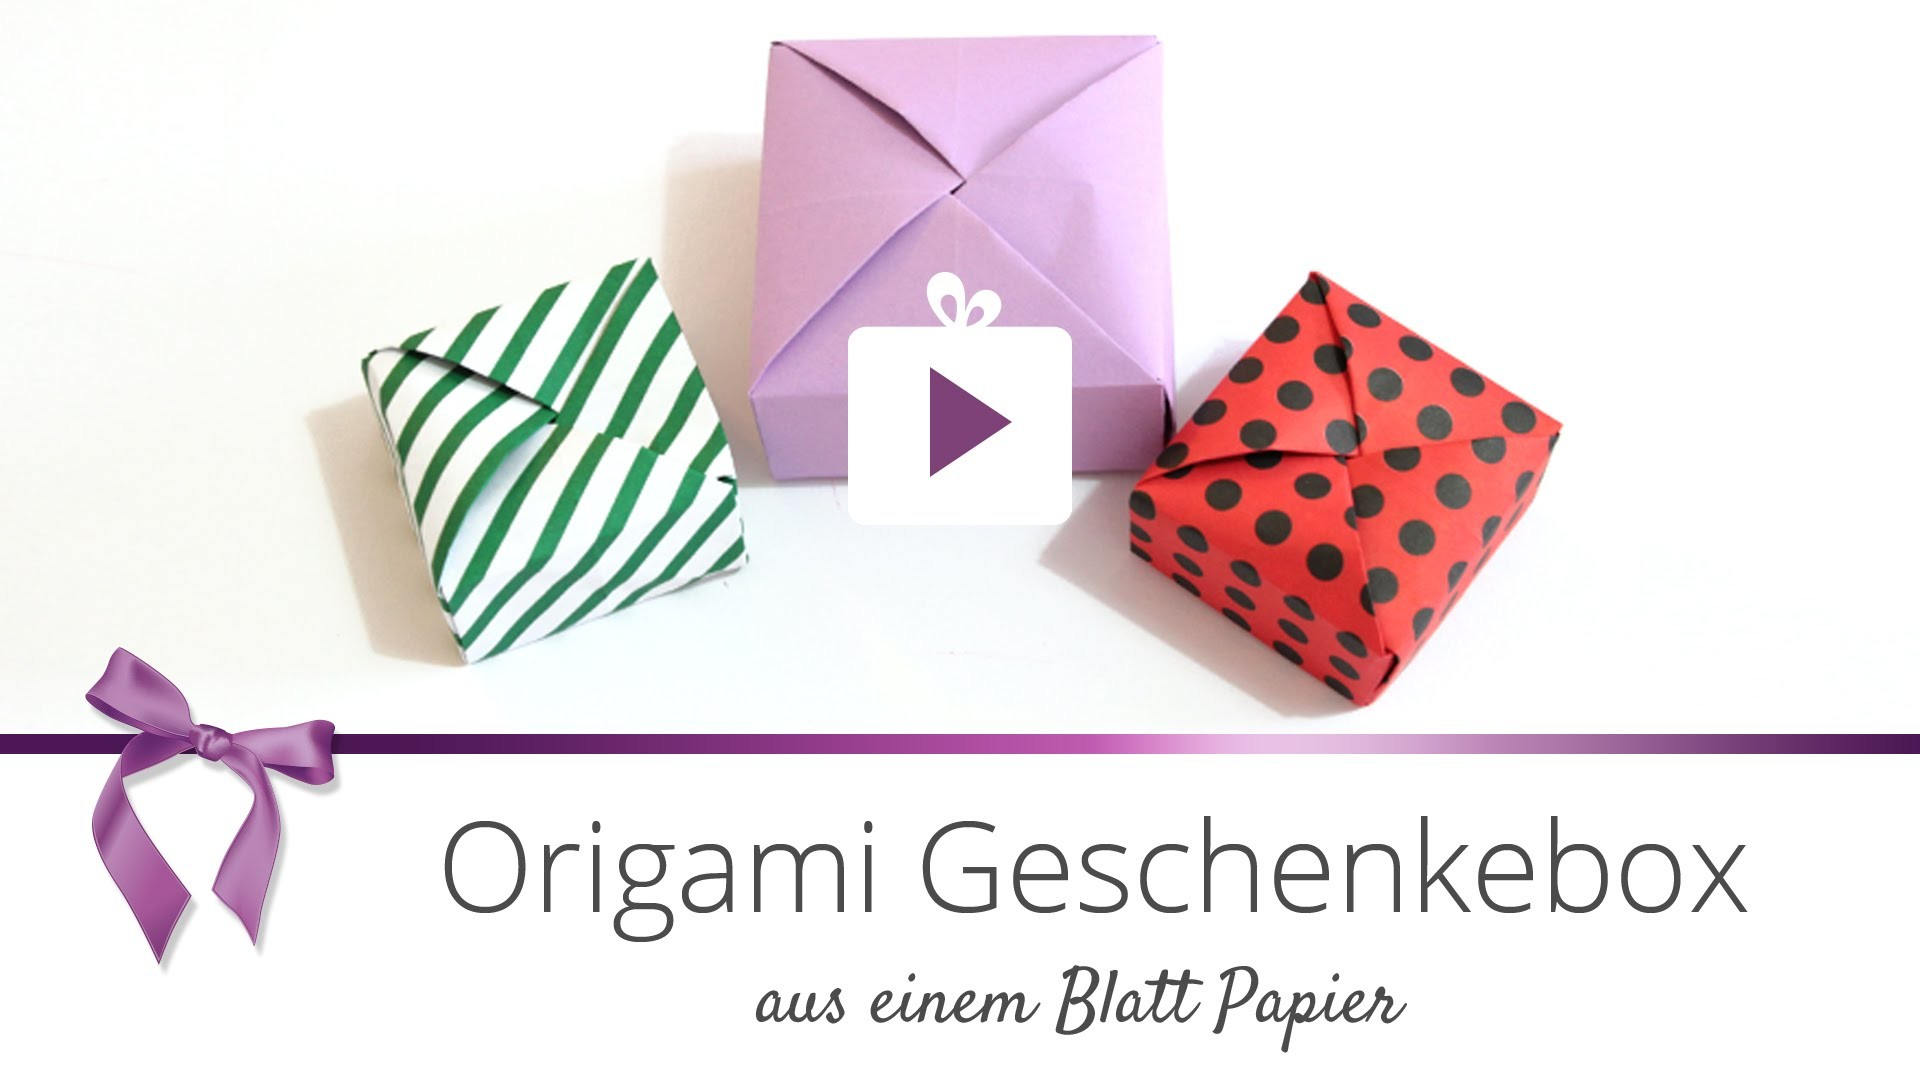 diy origami geschenkebox danato. Black Bedroom Furniture Sets. Home Design Ideas